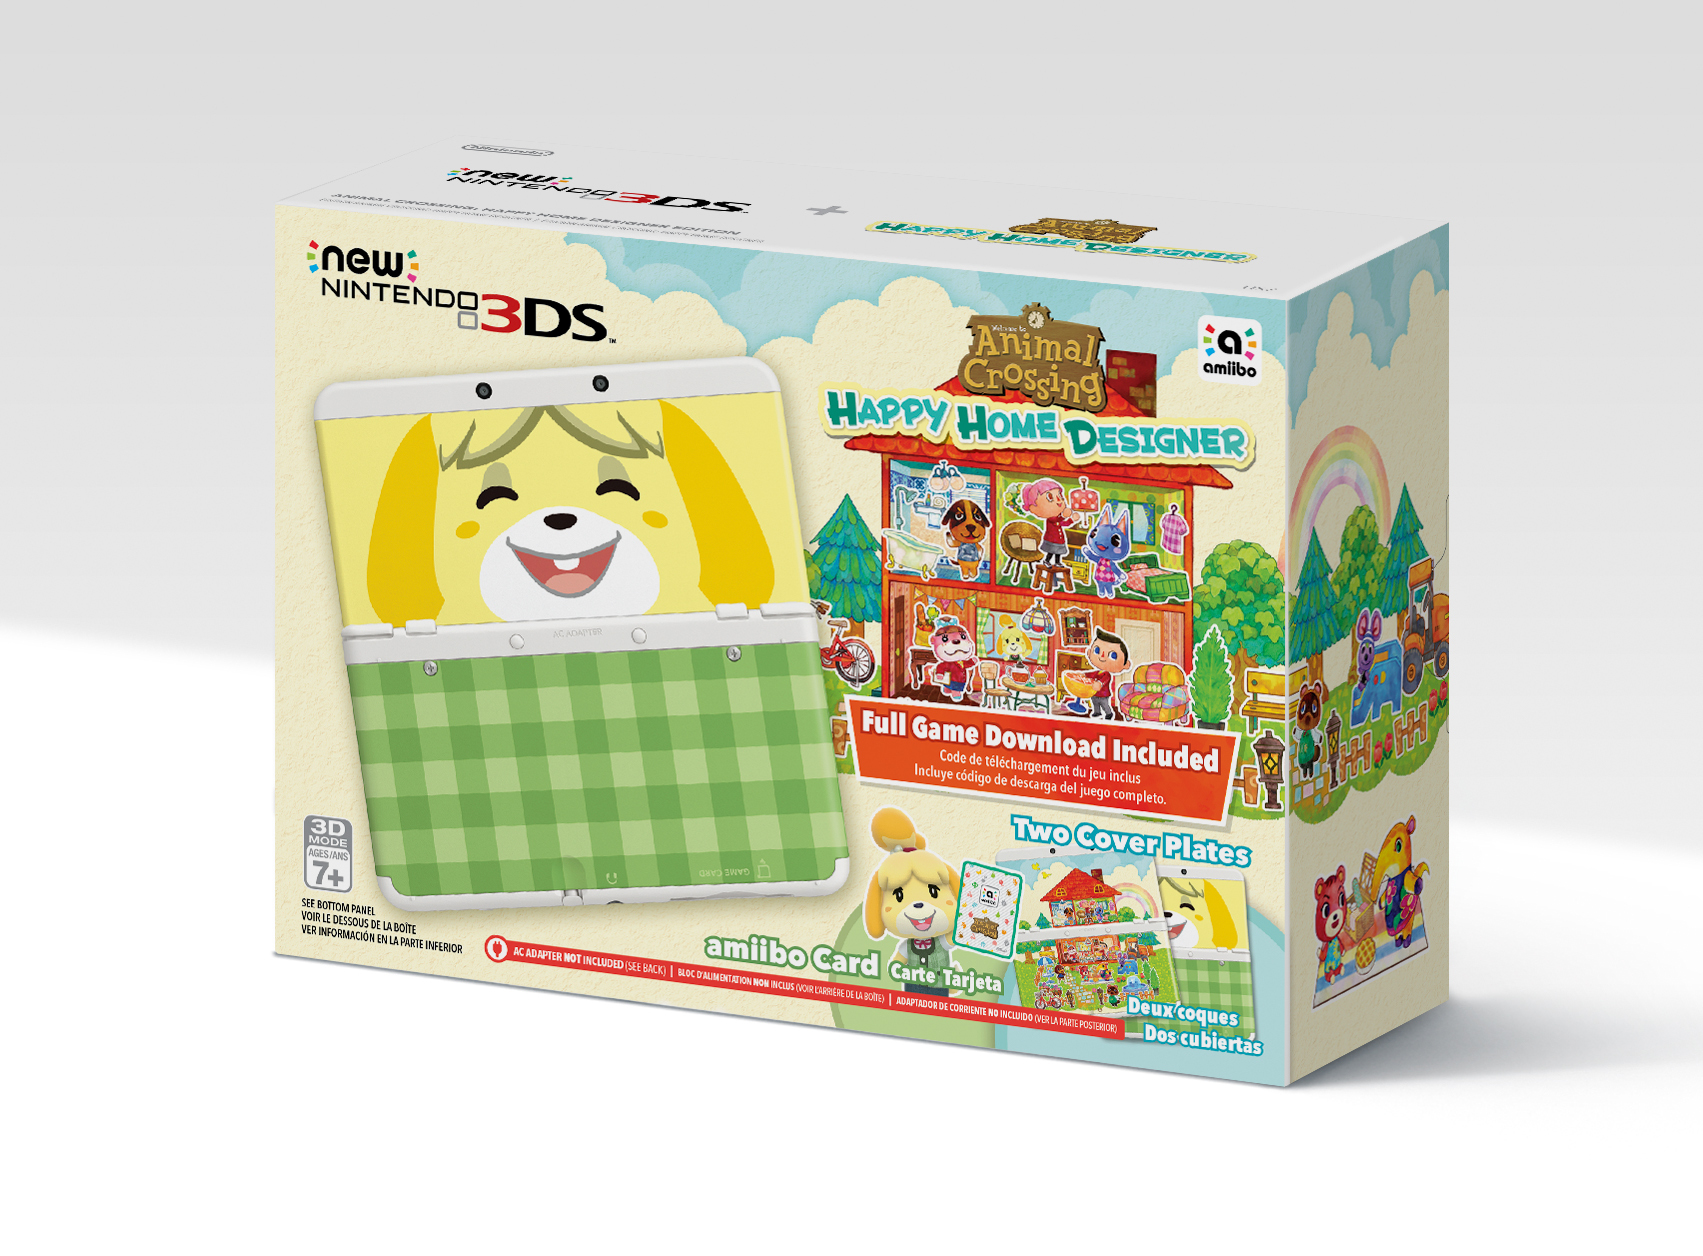 Does Animal Crossing New 3DS Bundle Come With White